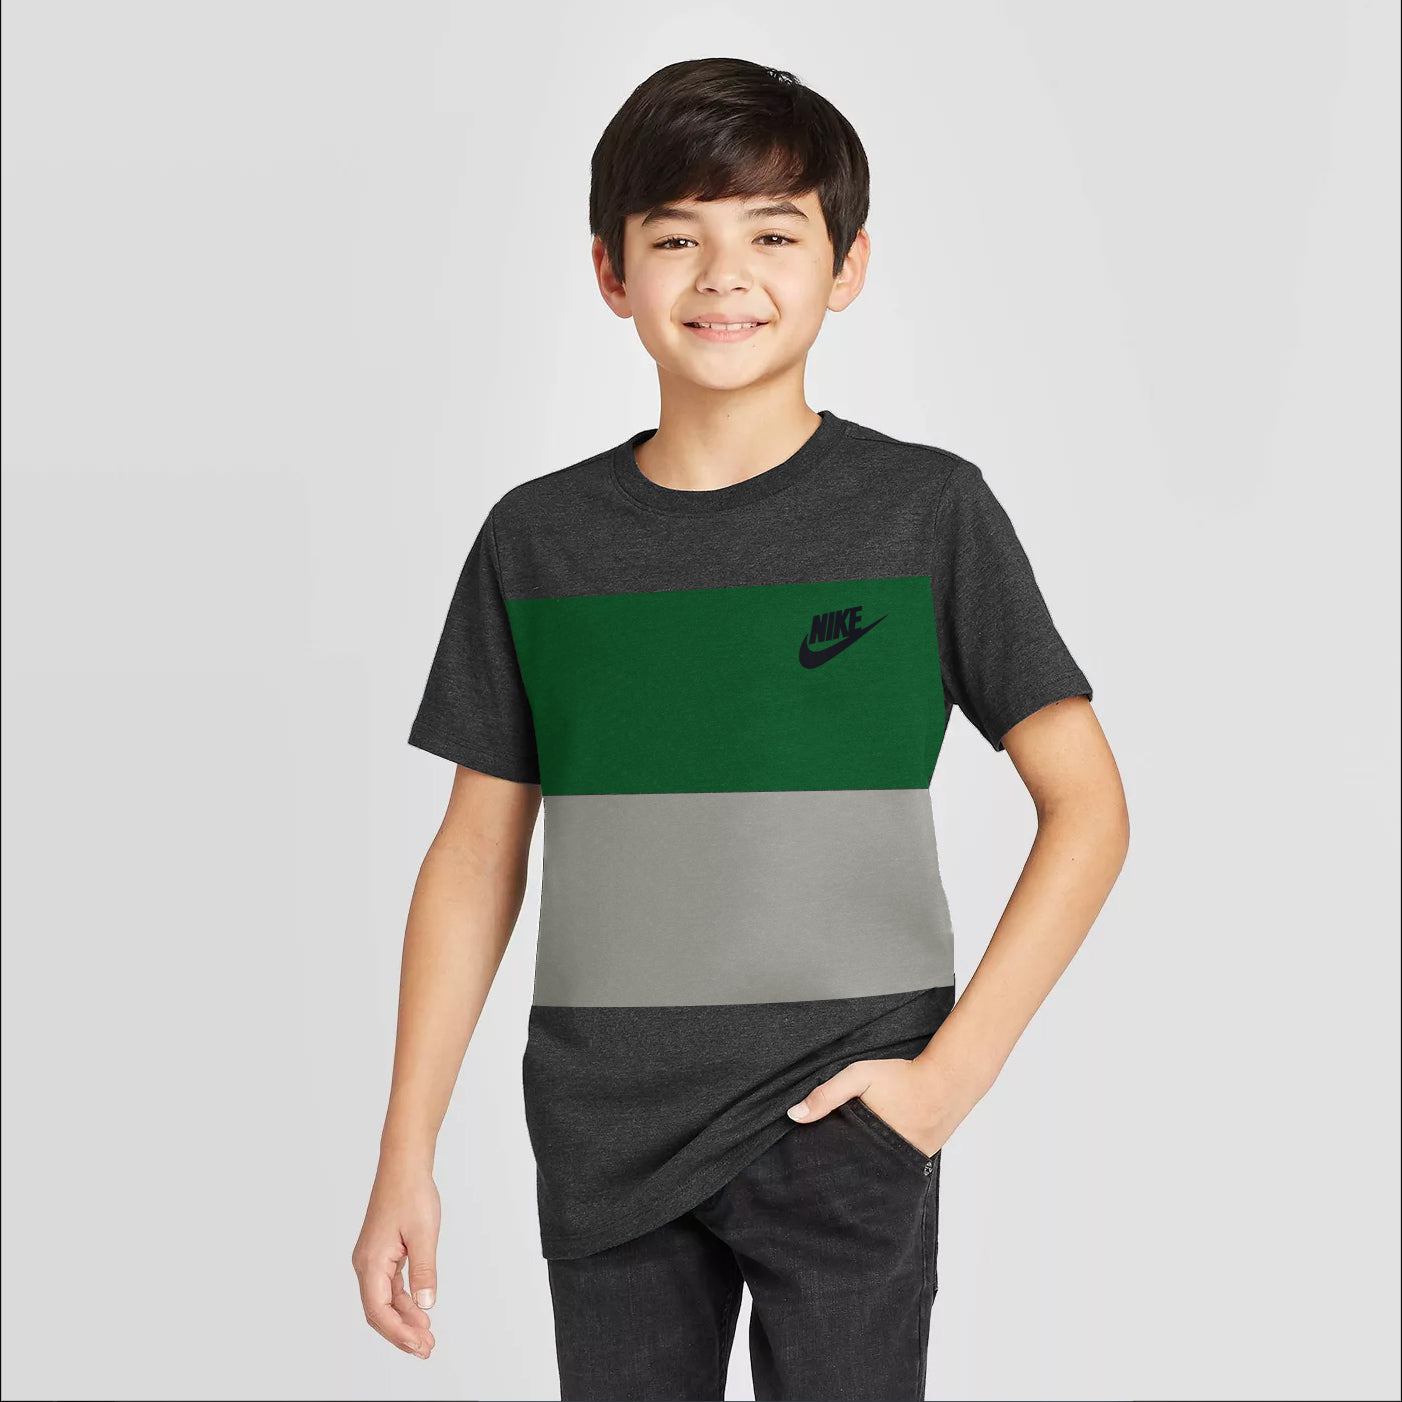 NK Crew Neck Single Jersey Short Sleeve Tee Shirt For Boys-Grey Melange with Green & Grey Panel-SP1969